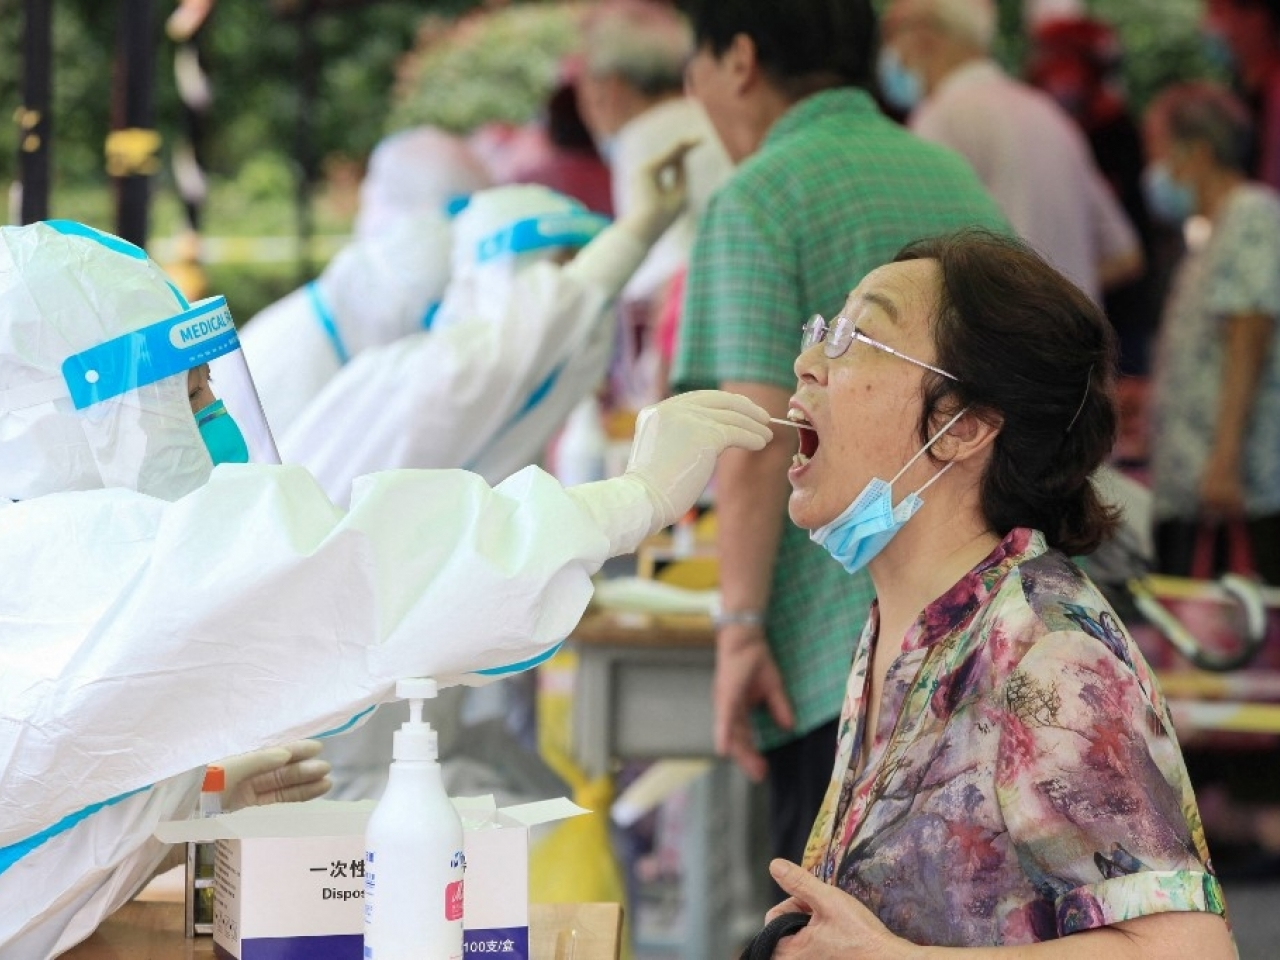 The flare up in cases has seen 171 cases detected in Jiangsu province, with infections spreading to at least four other provinces. Photo: AFP